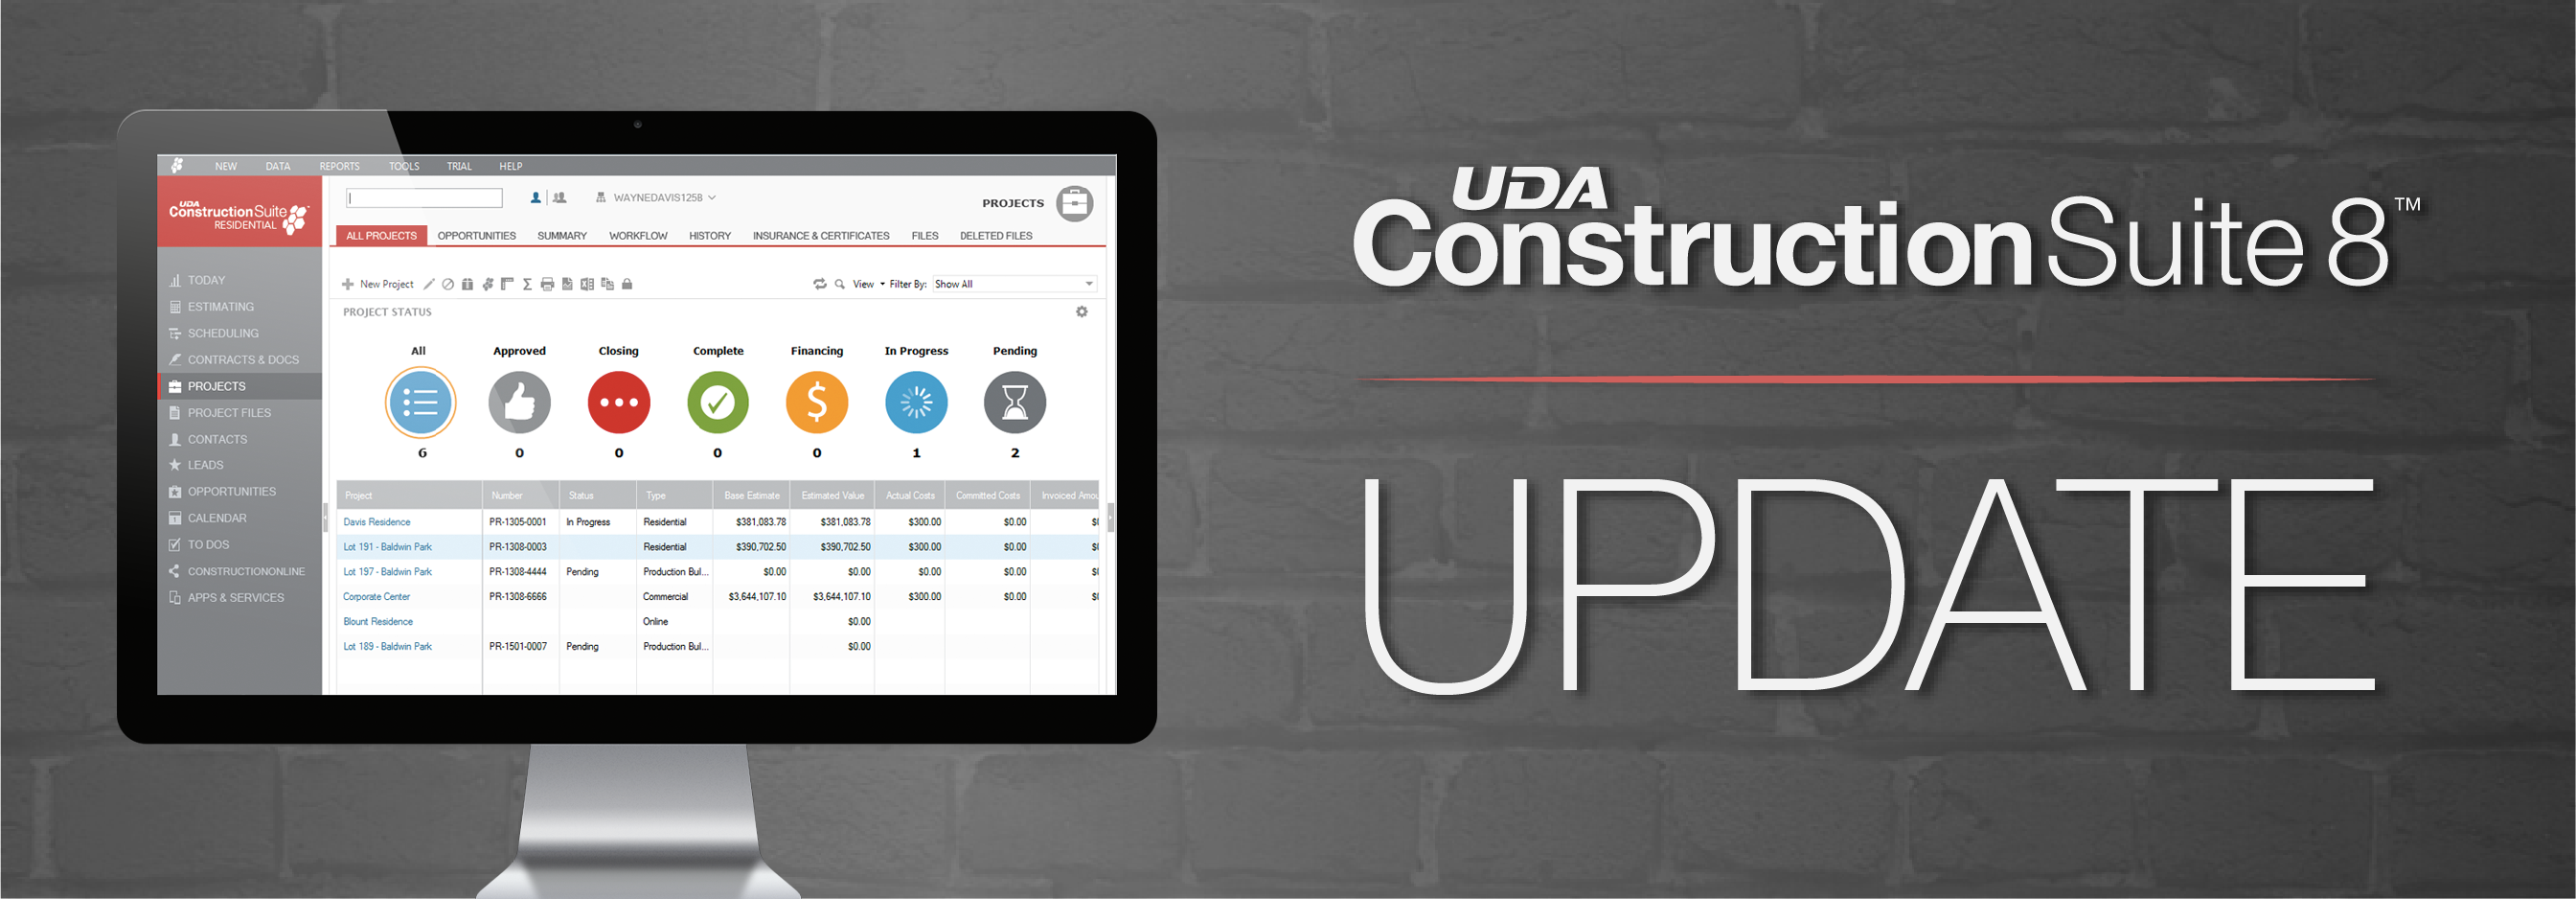 ConstructionSuite 8 Update Brings New Features and Enhancements